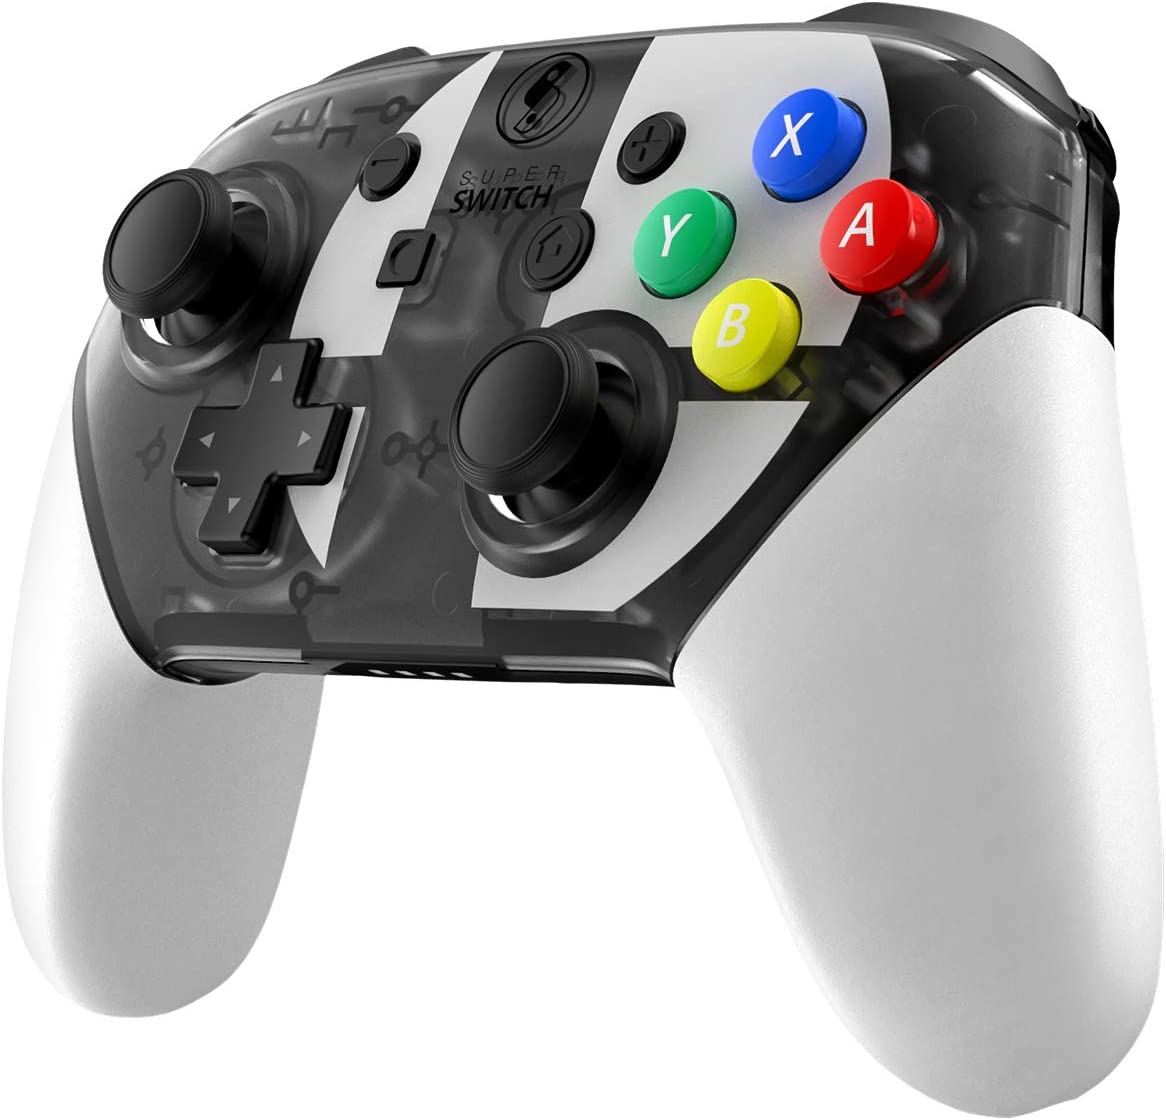 Amazoncom Replacement Shell For Nintendo Switch Pro Controller